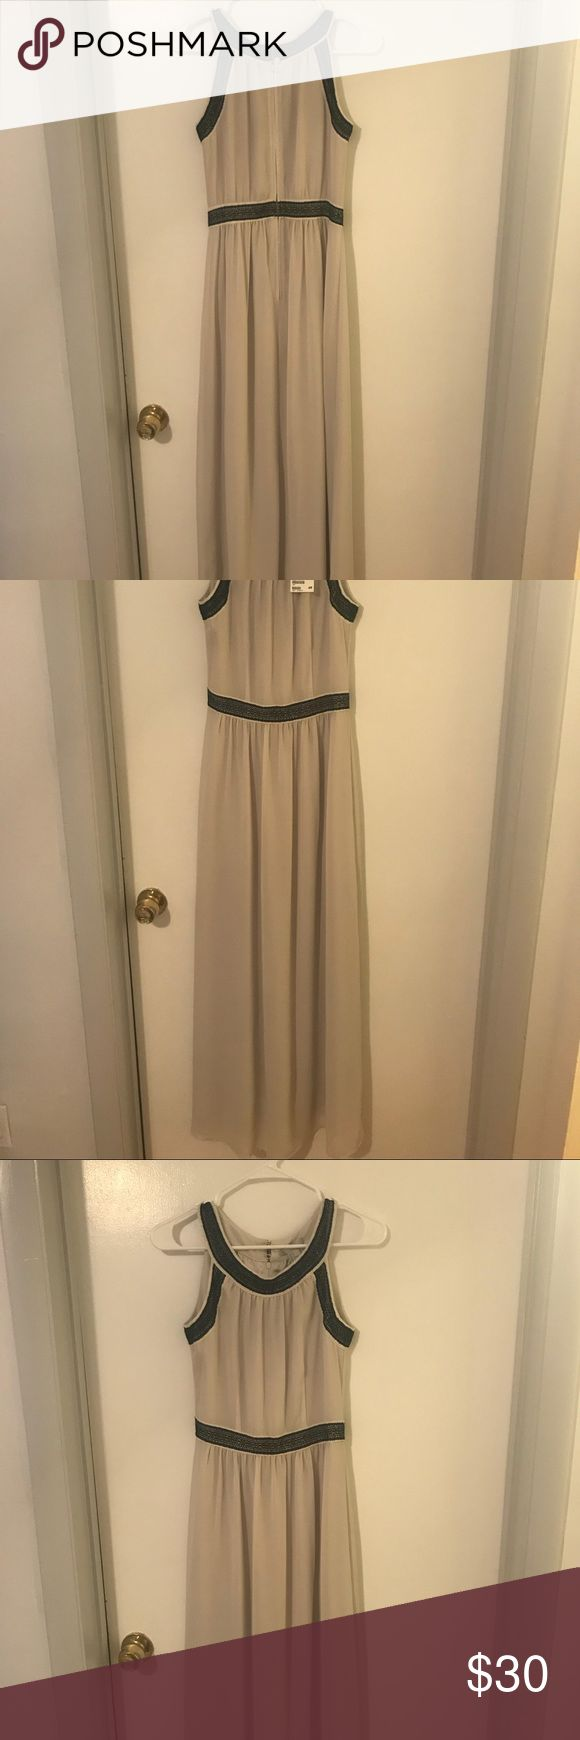 H&M long gown This formal dress flows beautifully and can be worn to a wedding or any formal event. The neck line is high. H&M Dresses Maxi